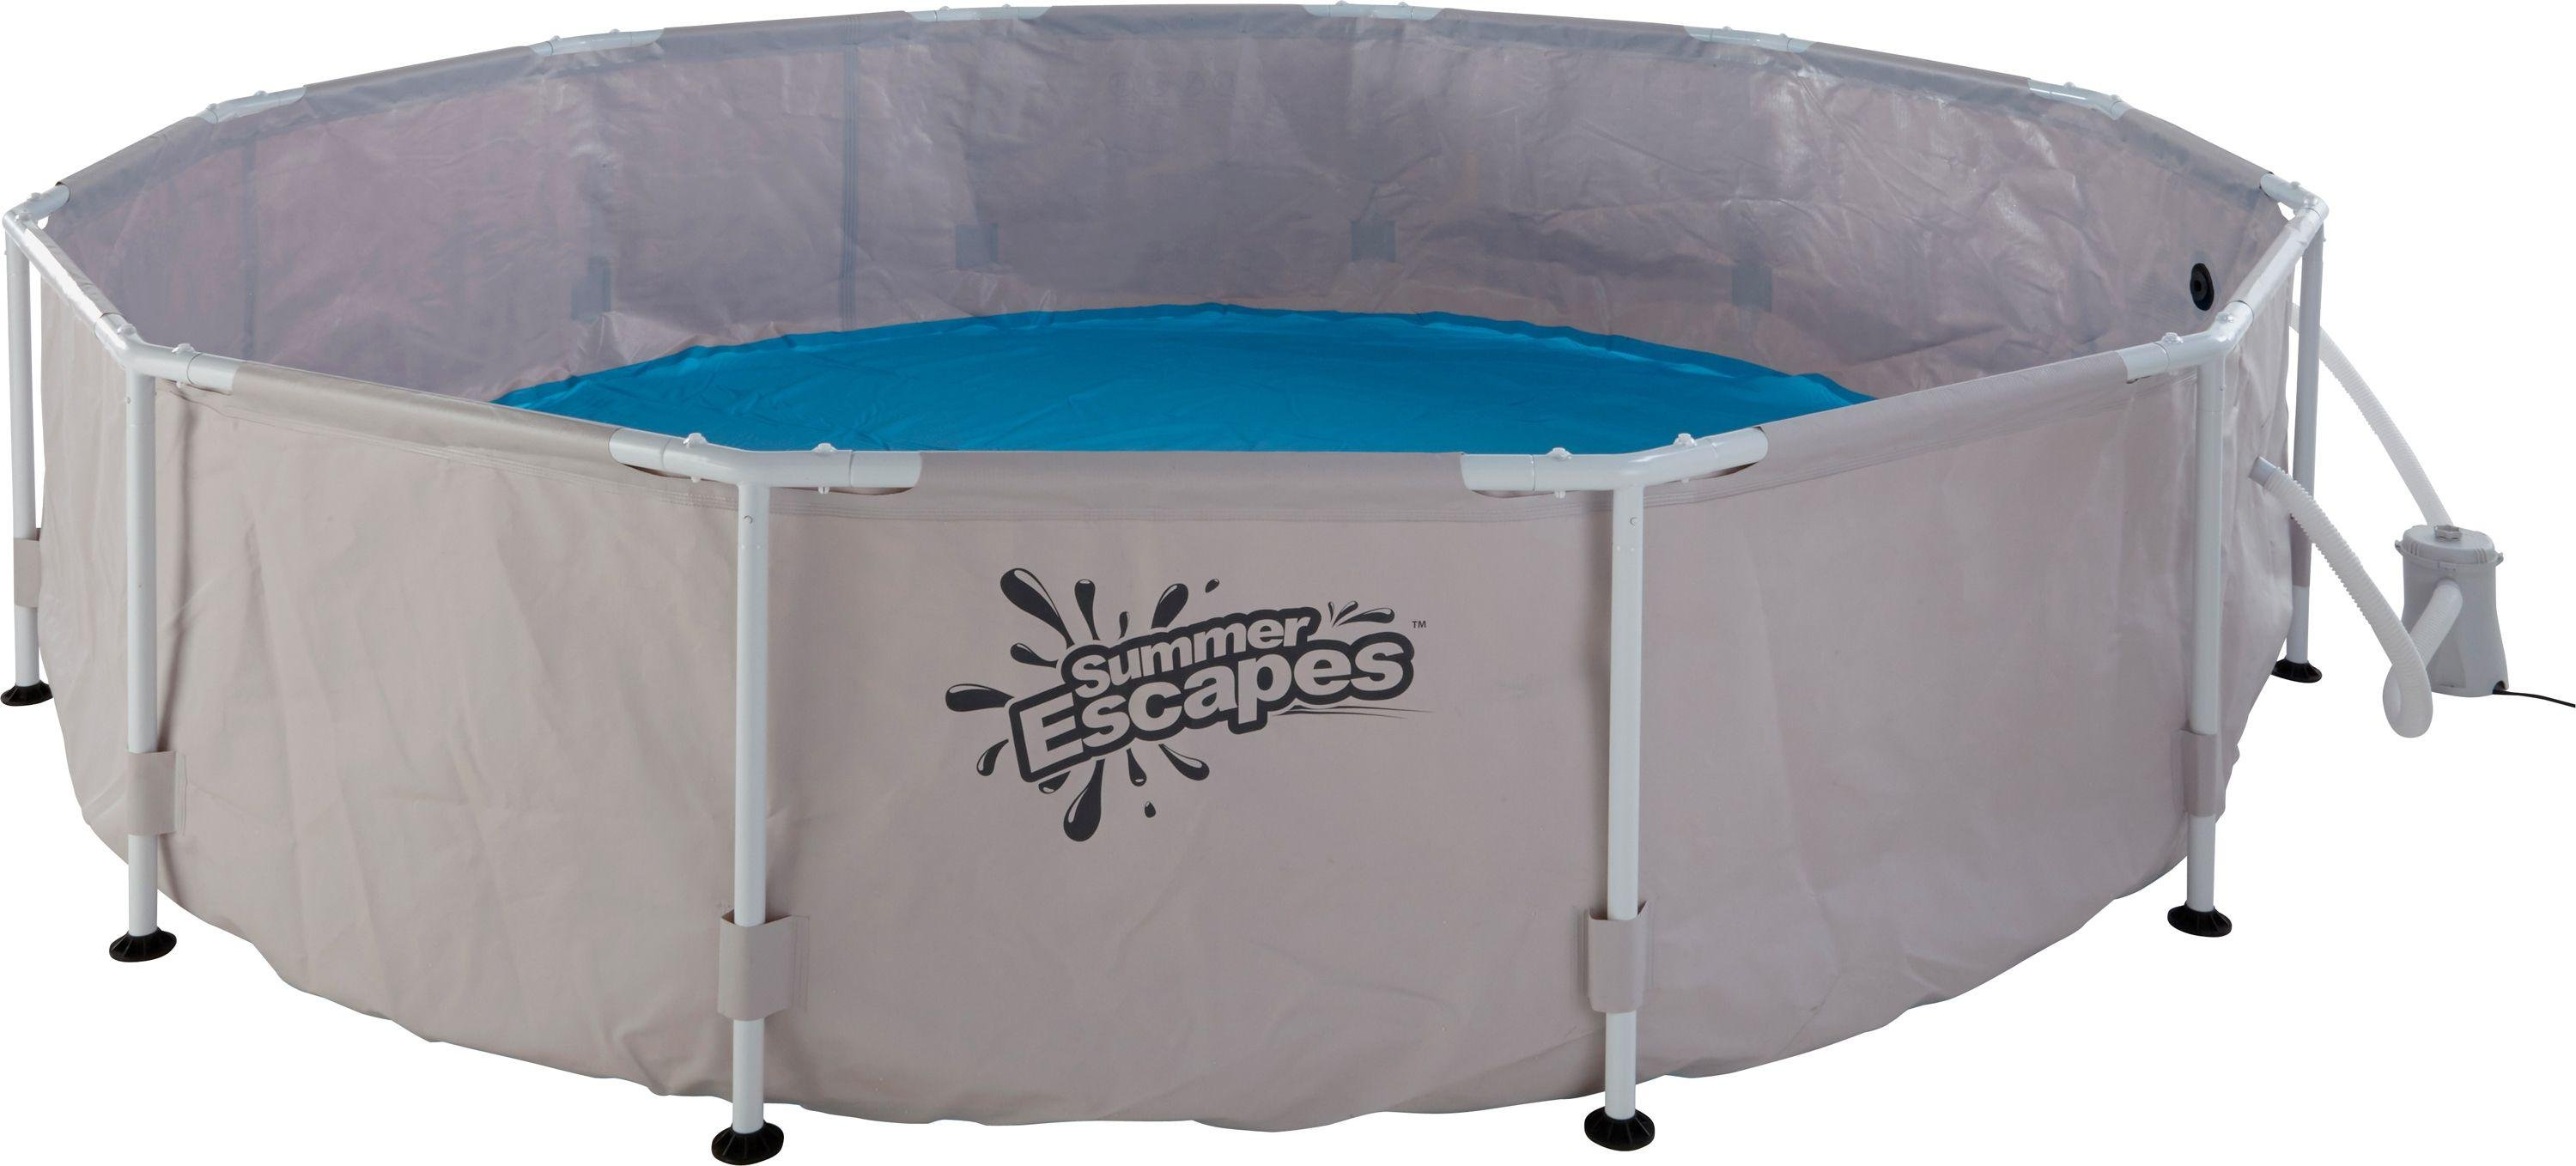 Summer Escapes Round Frame Pool   12ft   6056 Litres